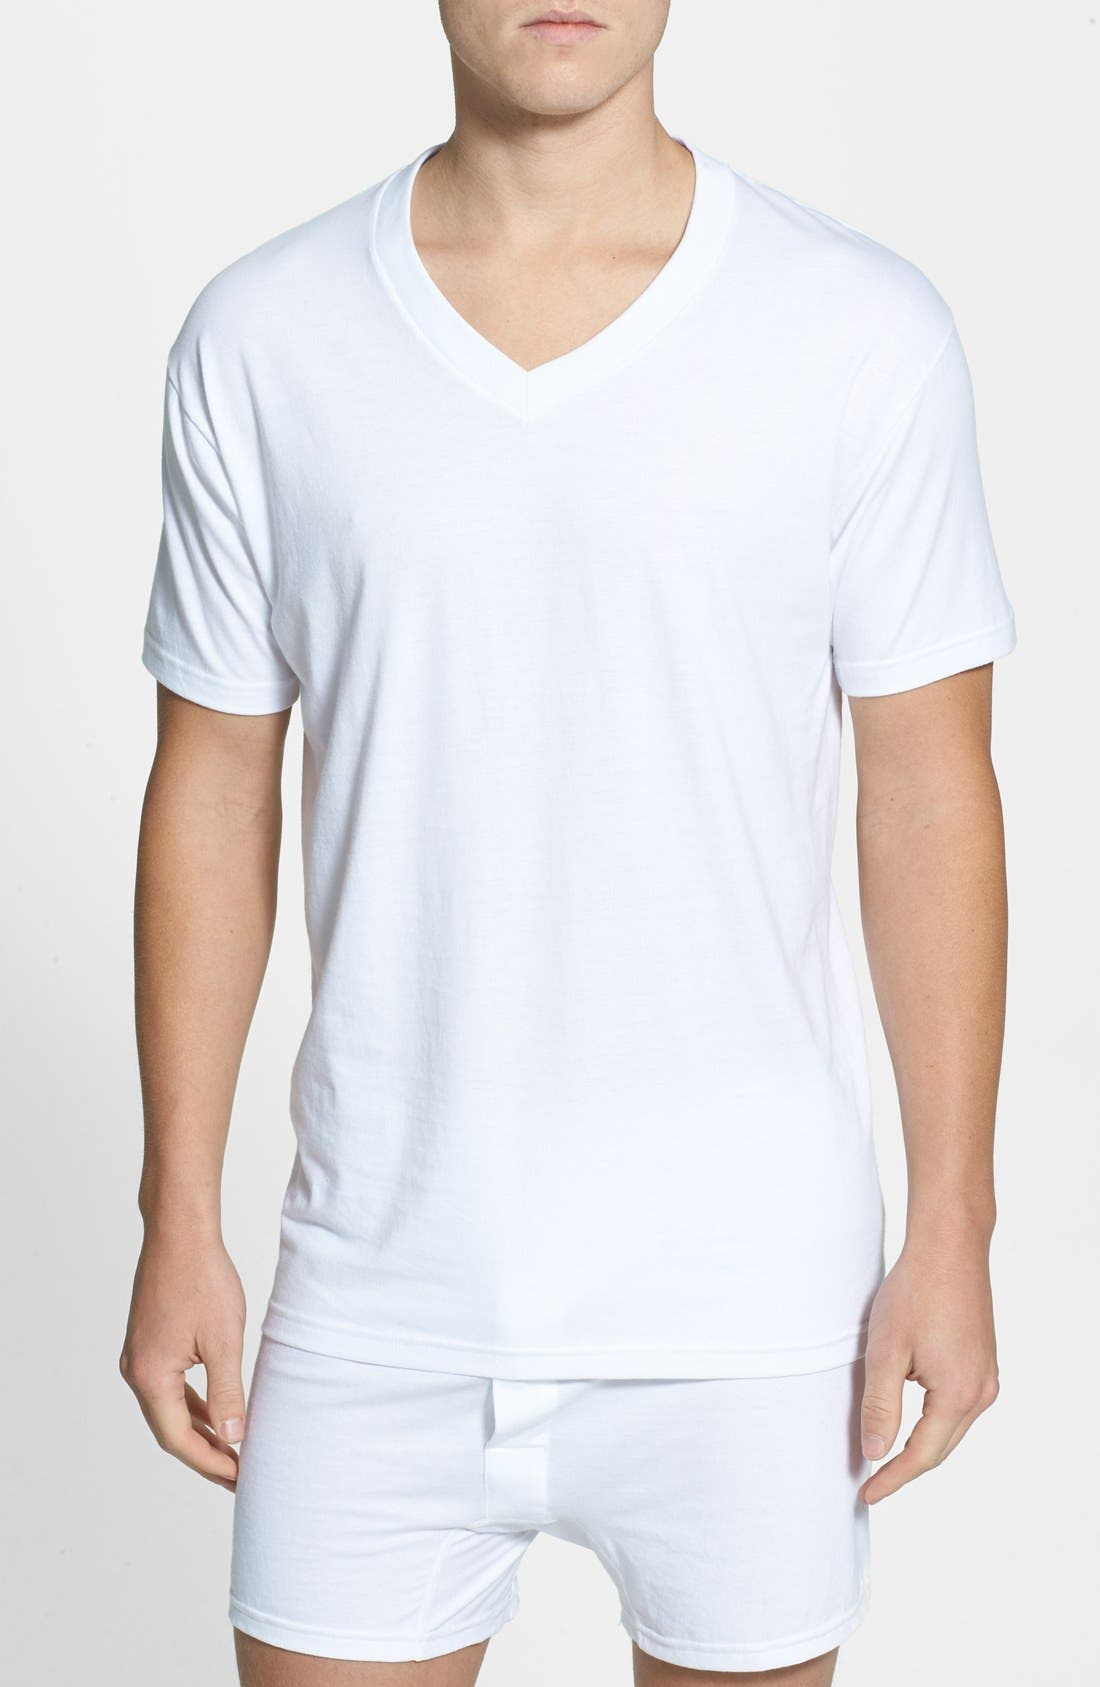 4-Pack Regular Fit Supima<sup>®</sup> Cotton V-Neck T-Shirts,                             Main thumbnail 1, color,                             WHITE